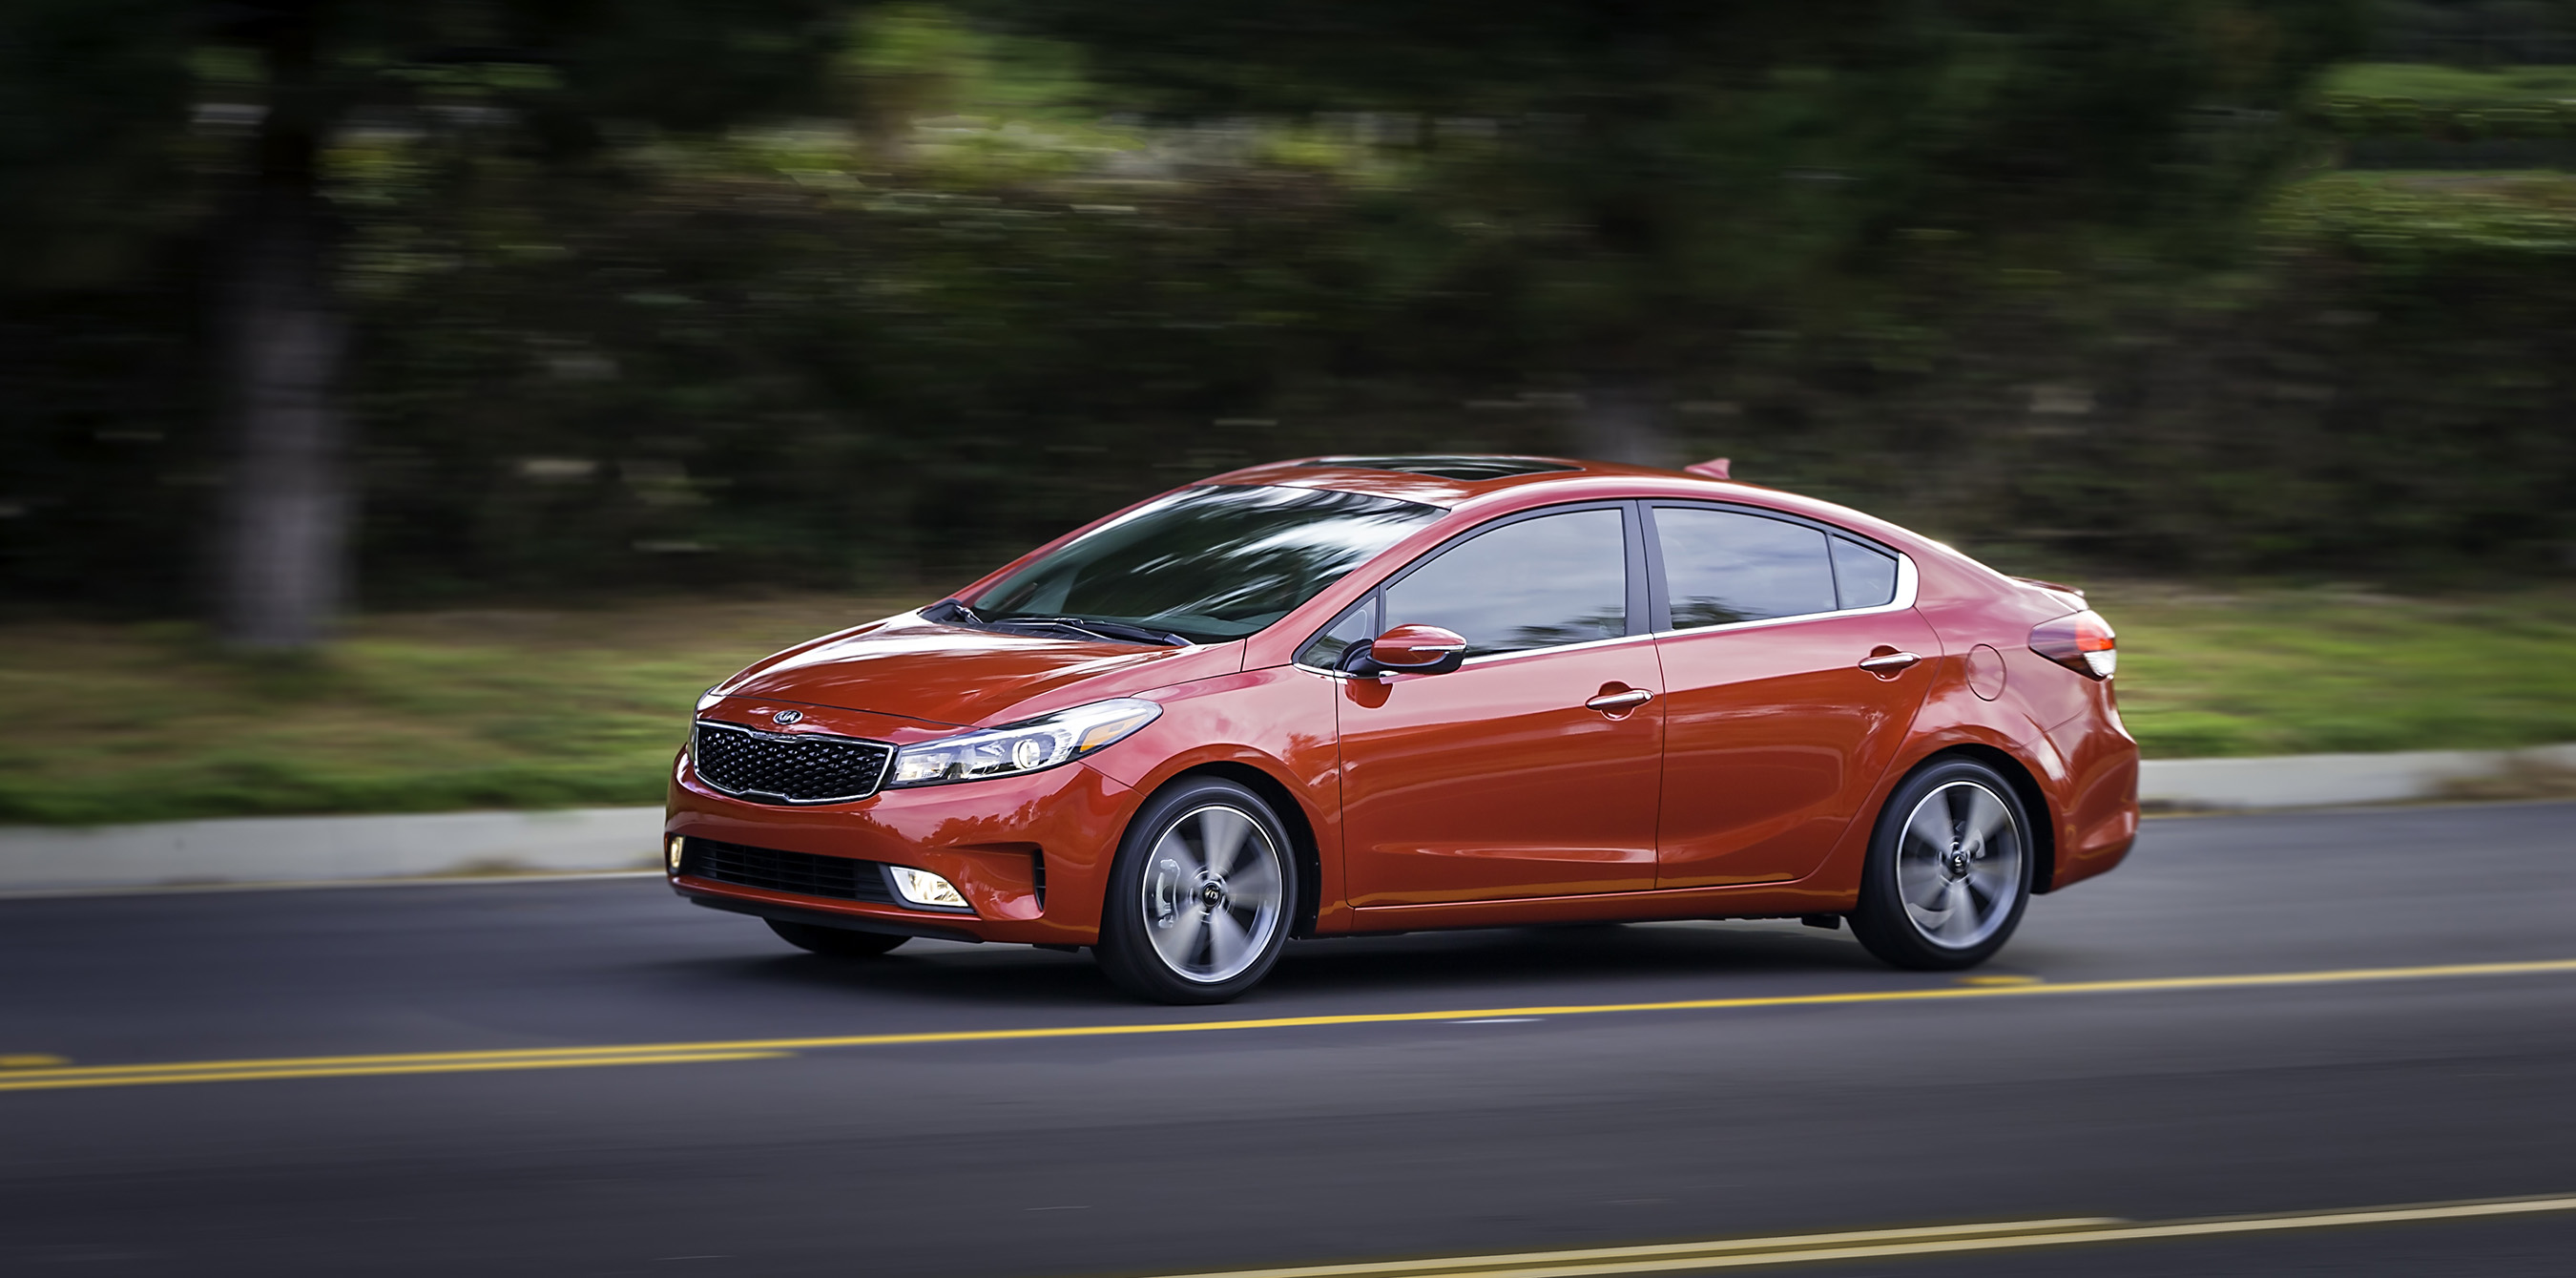 Kia unveils the refreshed 2017 Forte sedan at the North American International Auto Show.